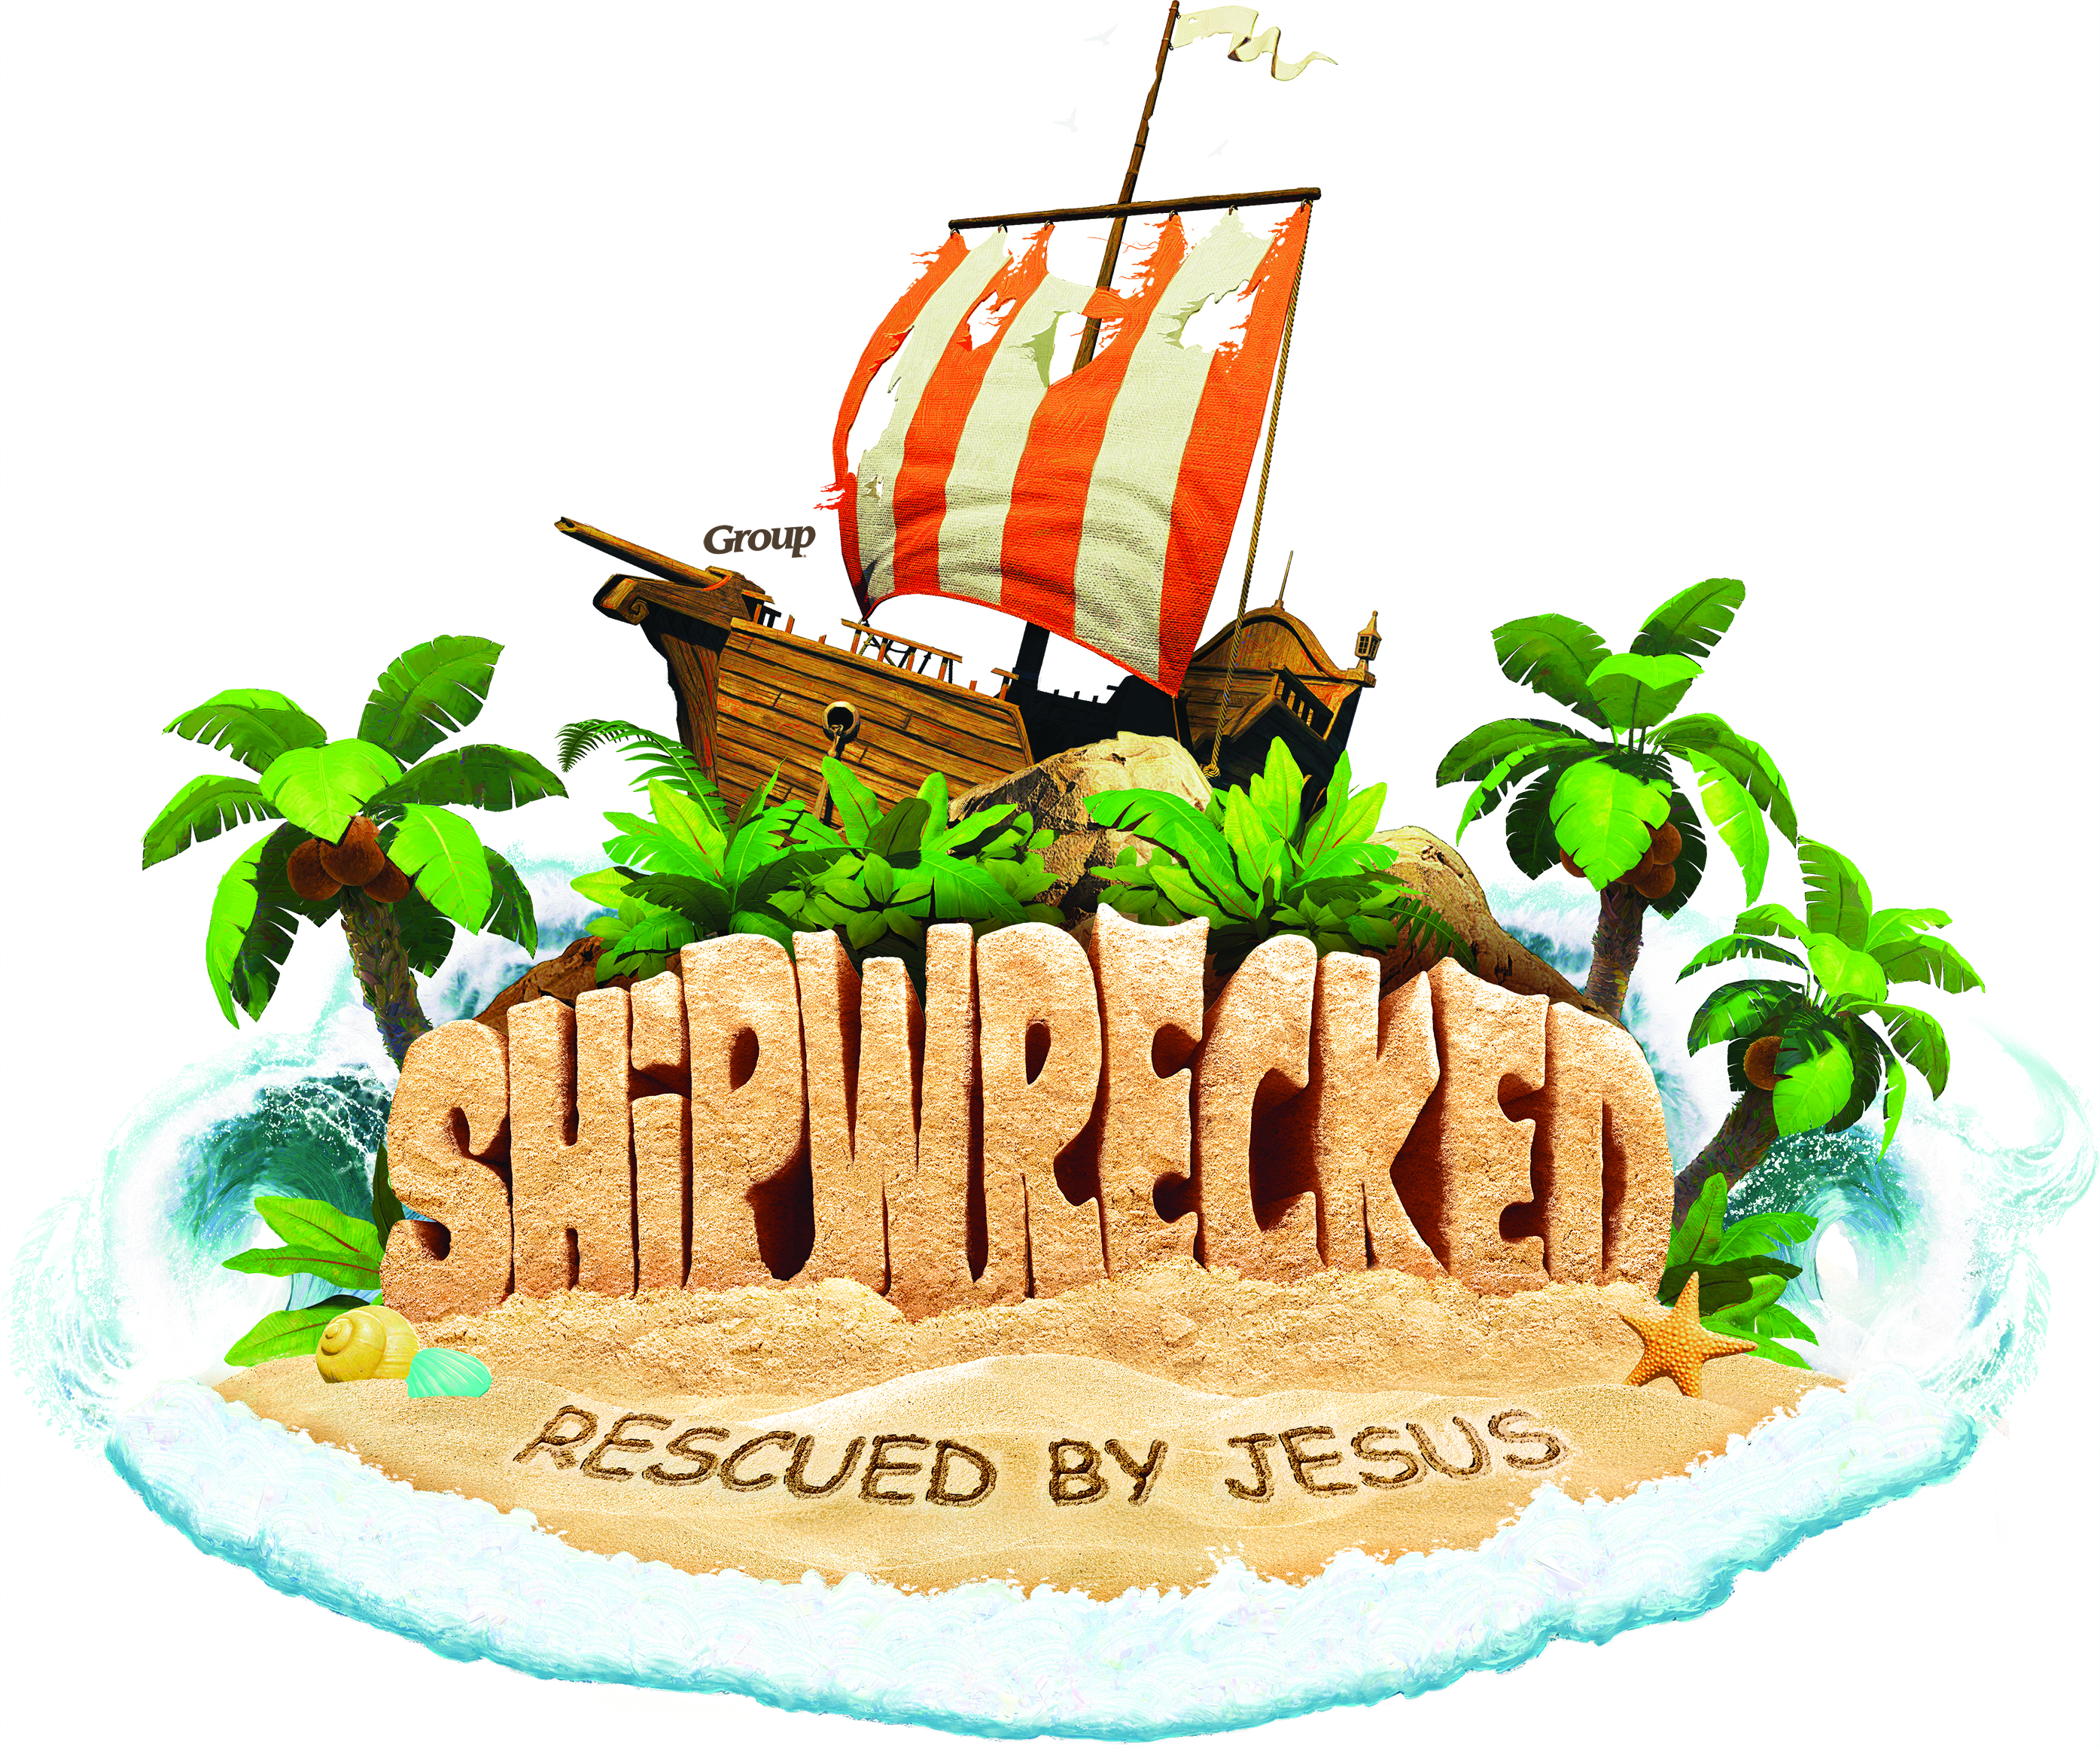 Shipwrecked vbs logo hires cmyk